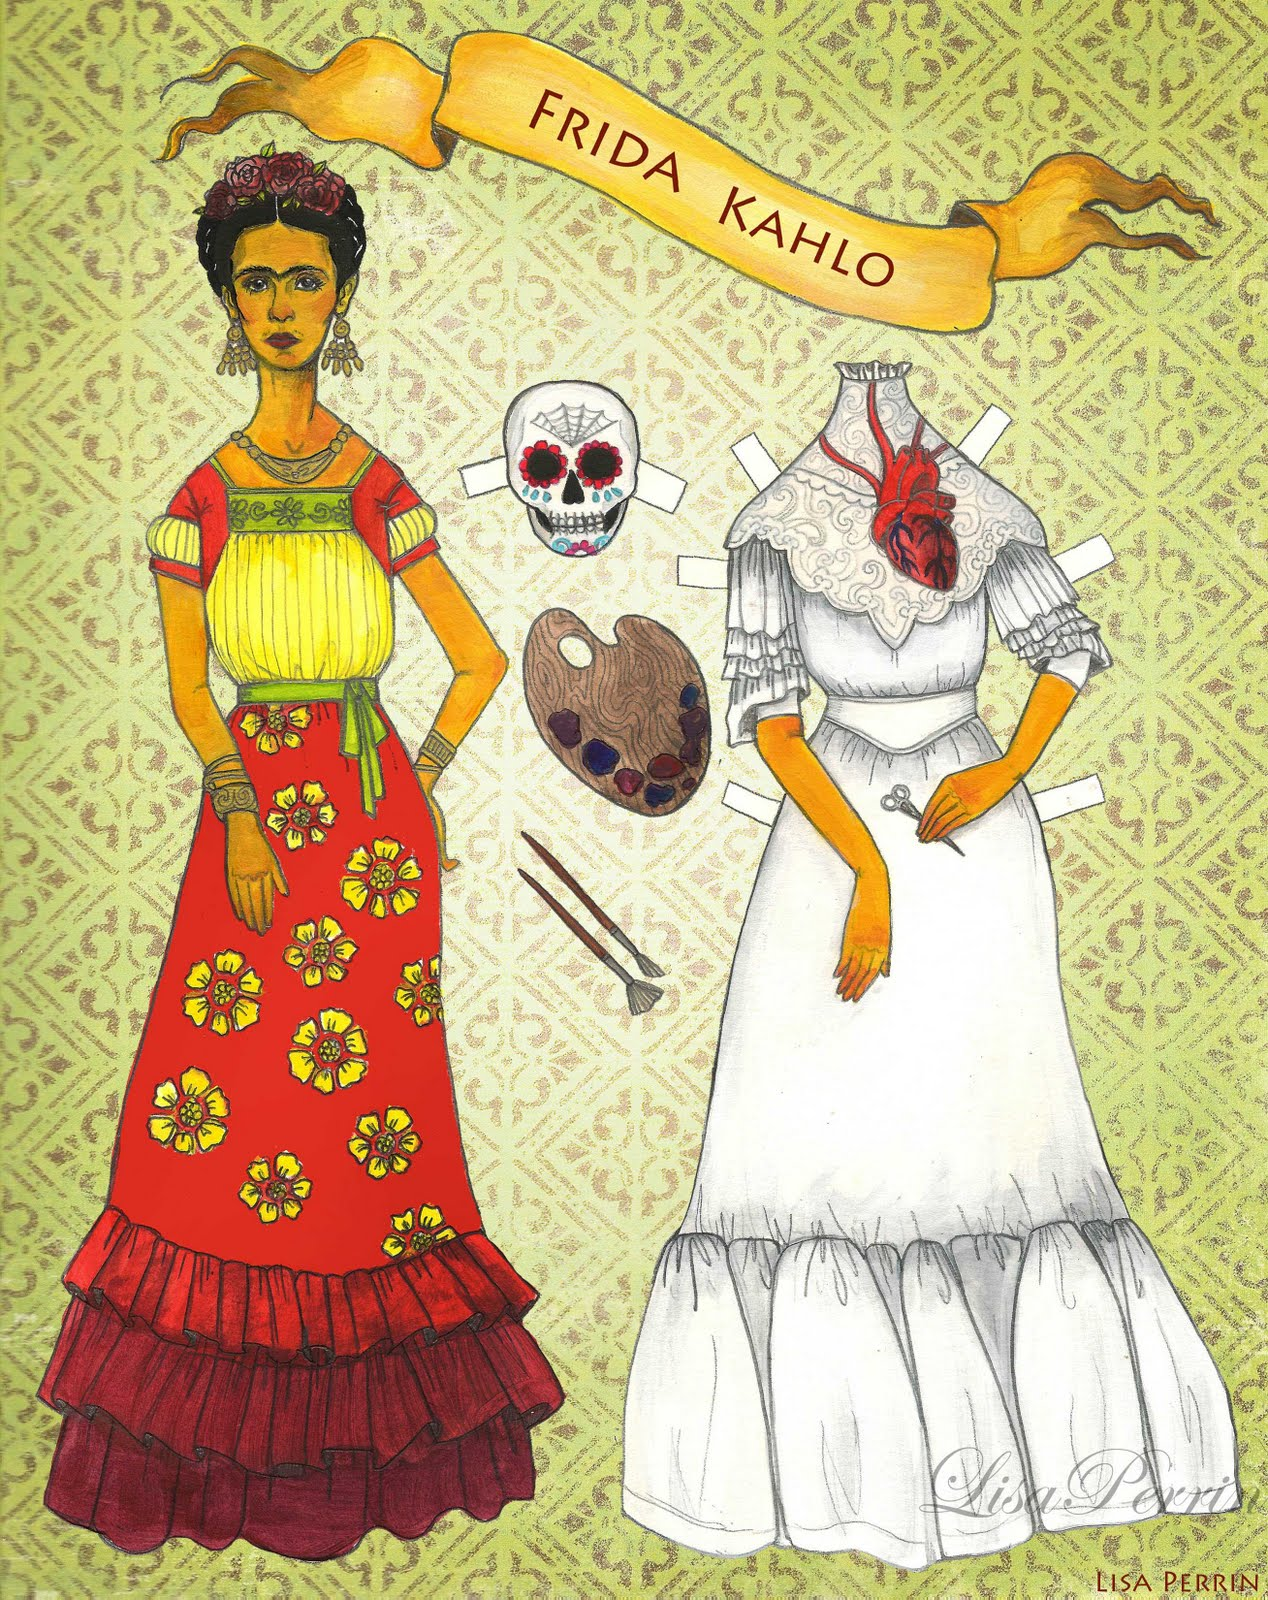 frida kahlo essay pixels college essays college application essays frida kahlo essay